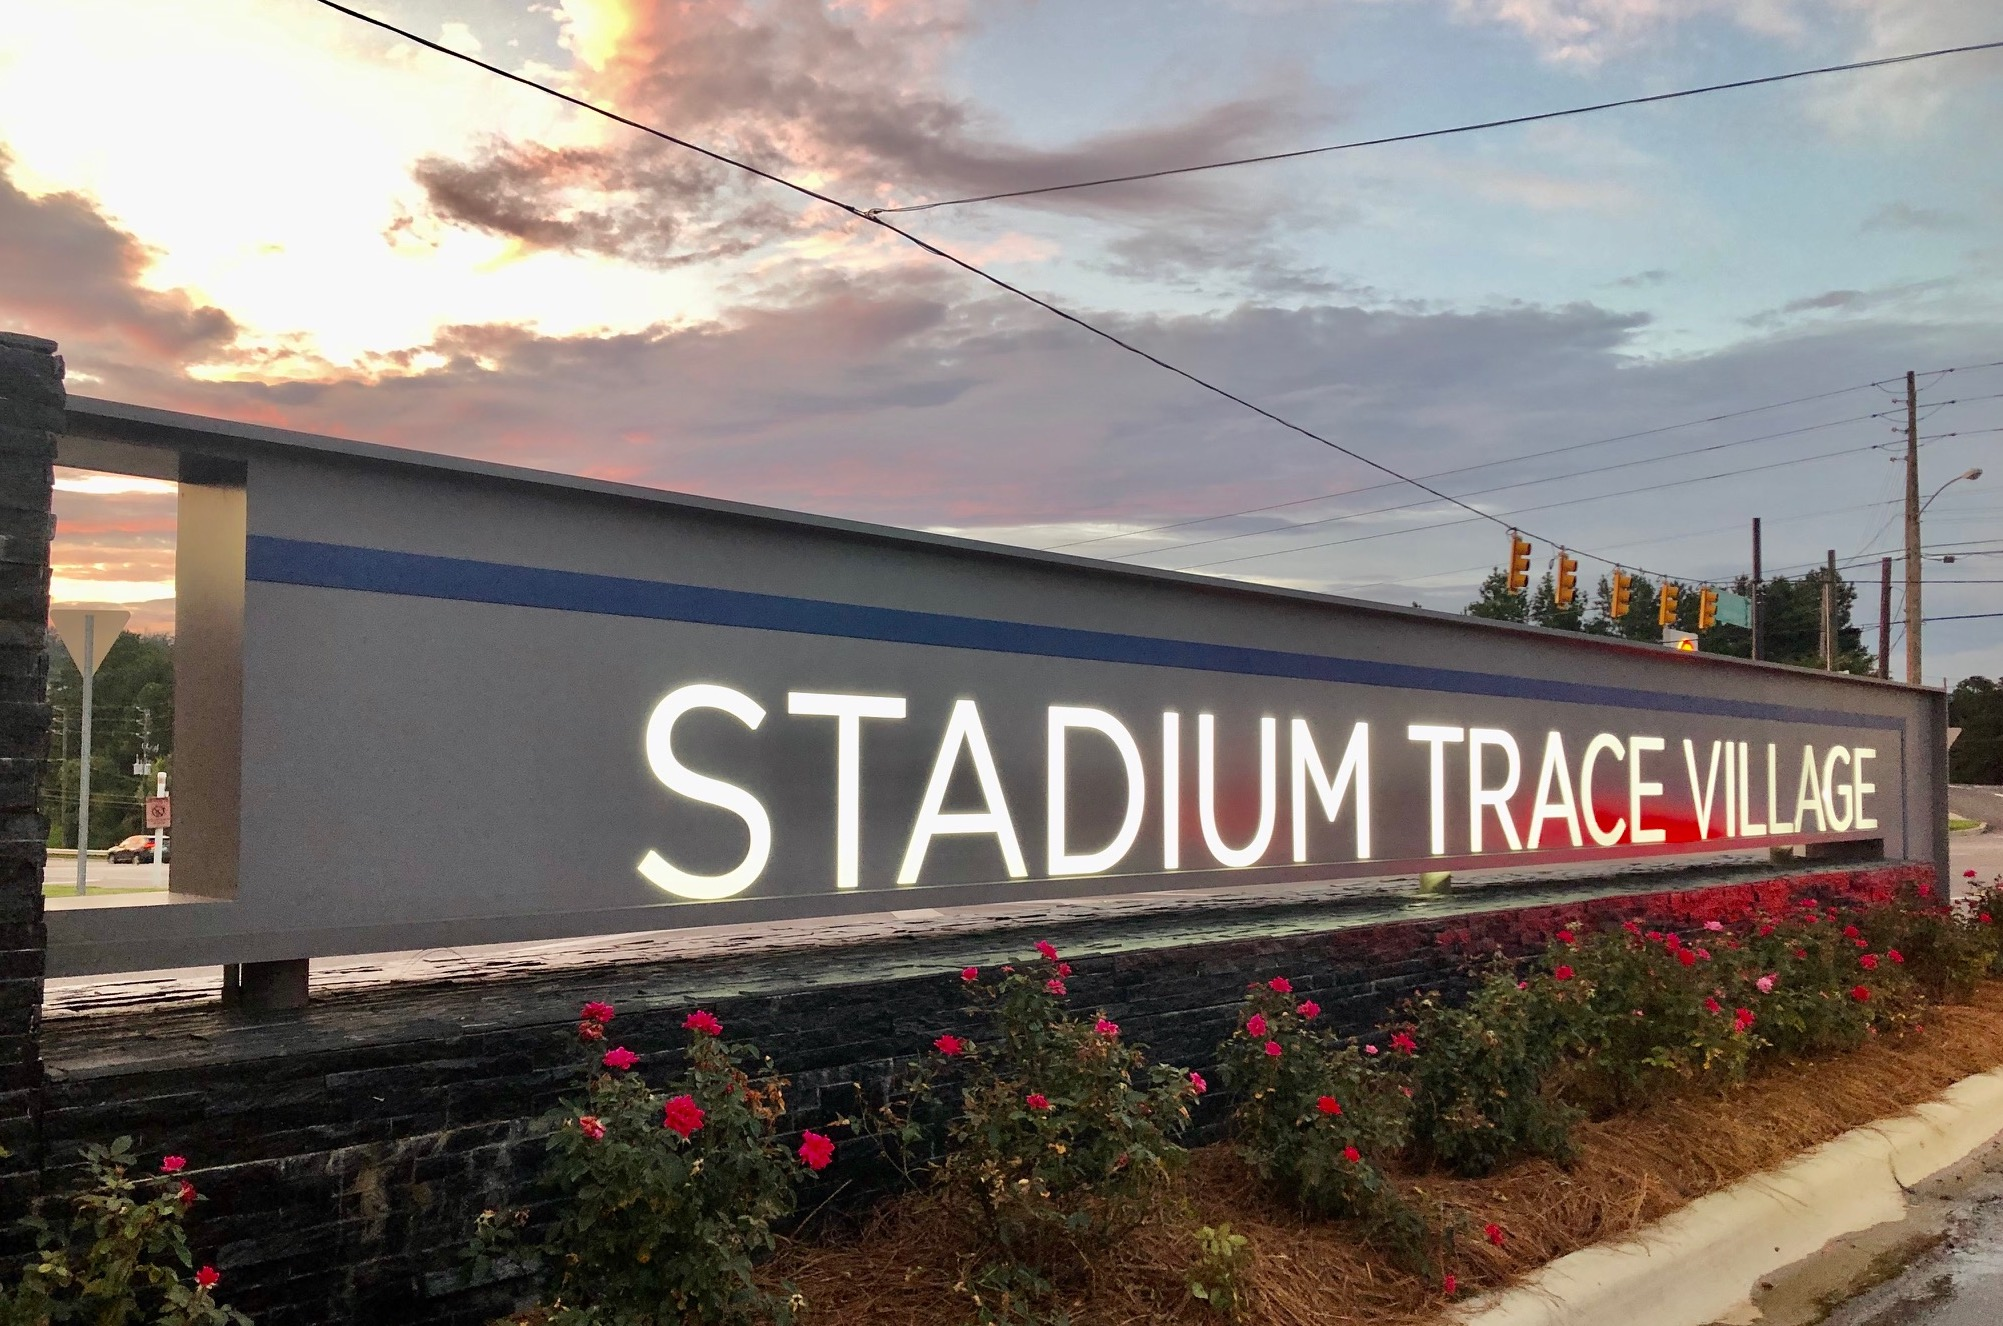 Hoover adds new brand new prototype hotel to Stadium Trace neighborhood—get details here